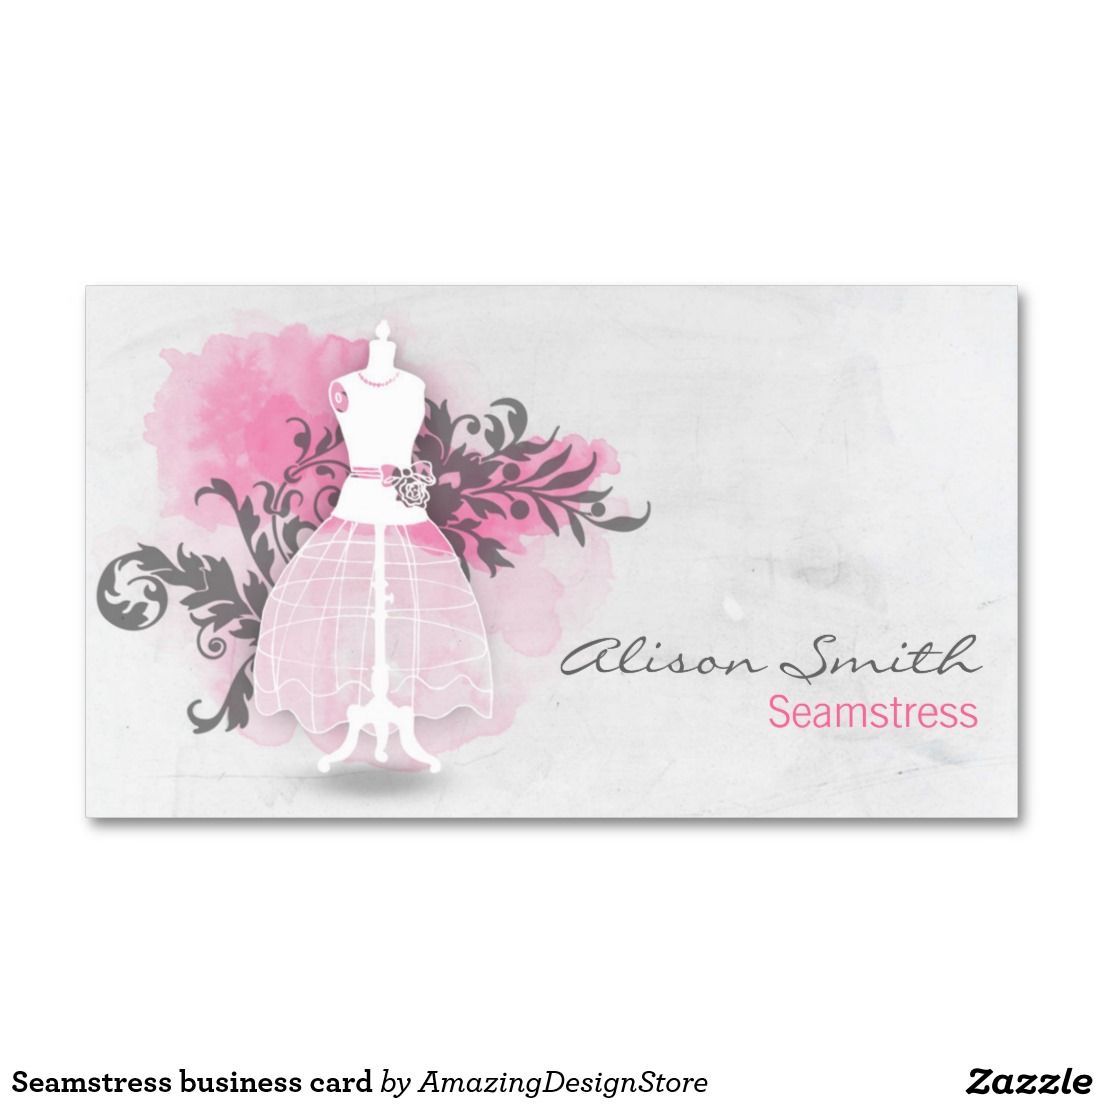 Seamstress business card   Business cards, Business and Logos